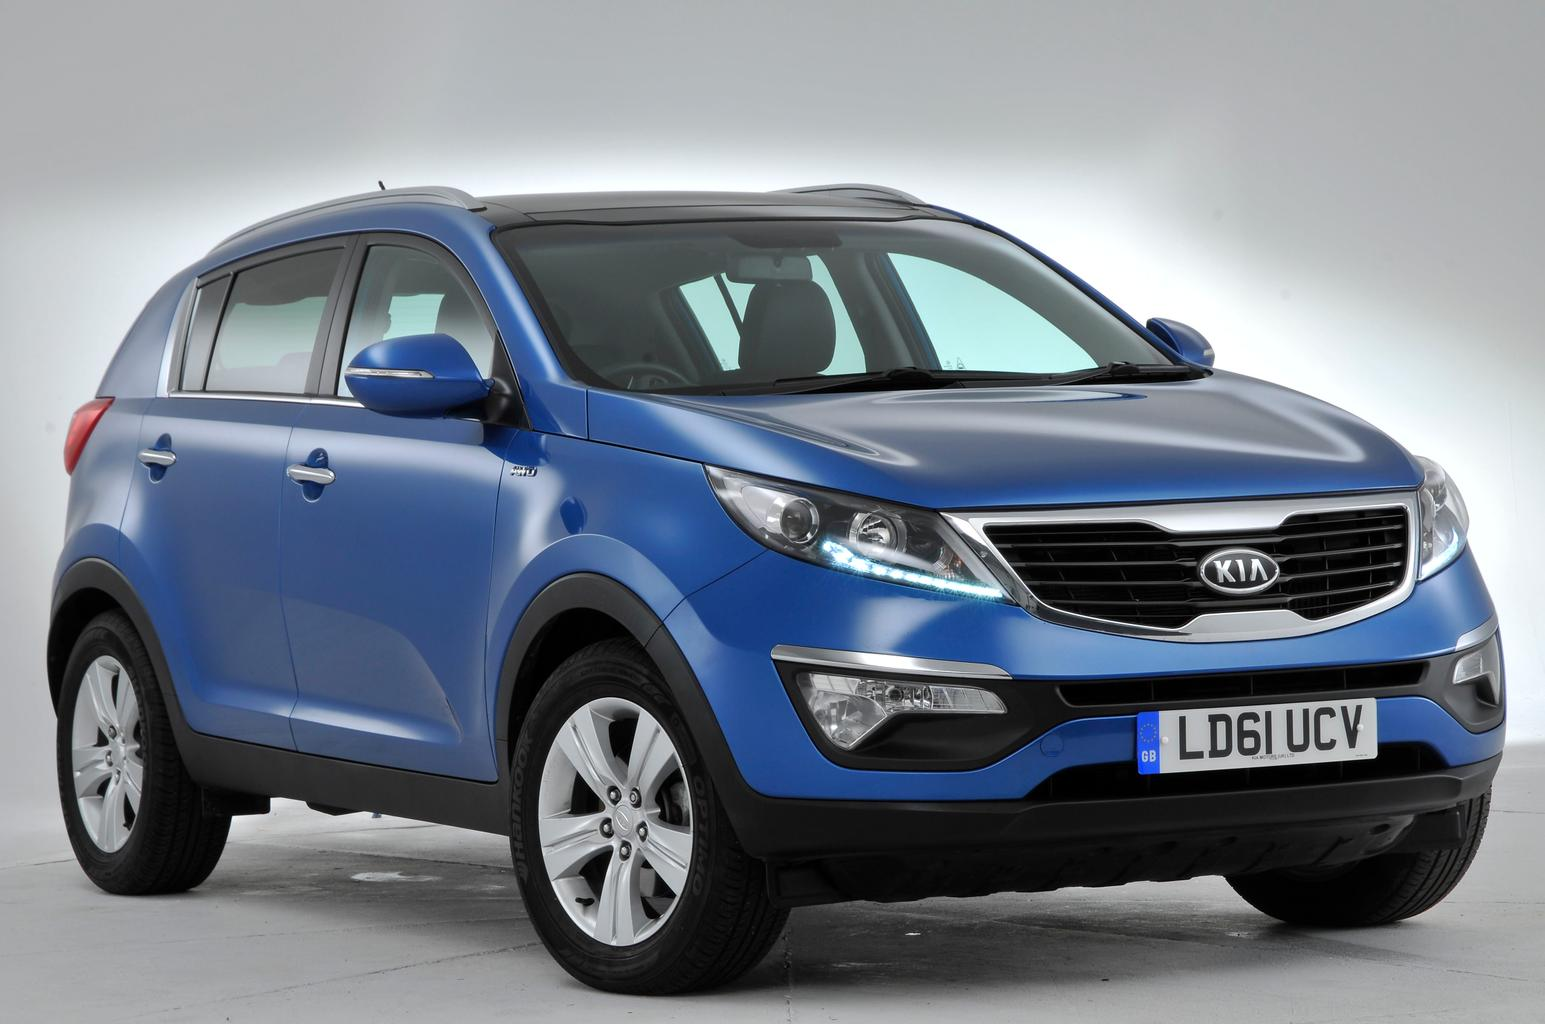 Used test – dependable SUVs: Honda CR-V vs Kia Sportage vs Mazda CX-5 vs Volkswagen Tiguan